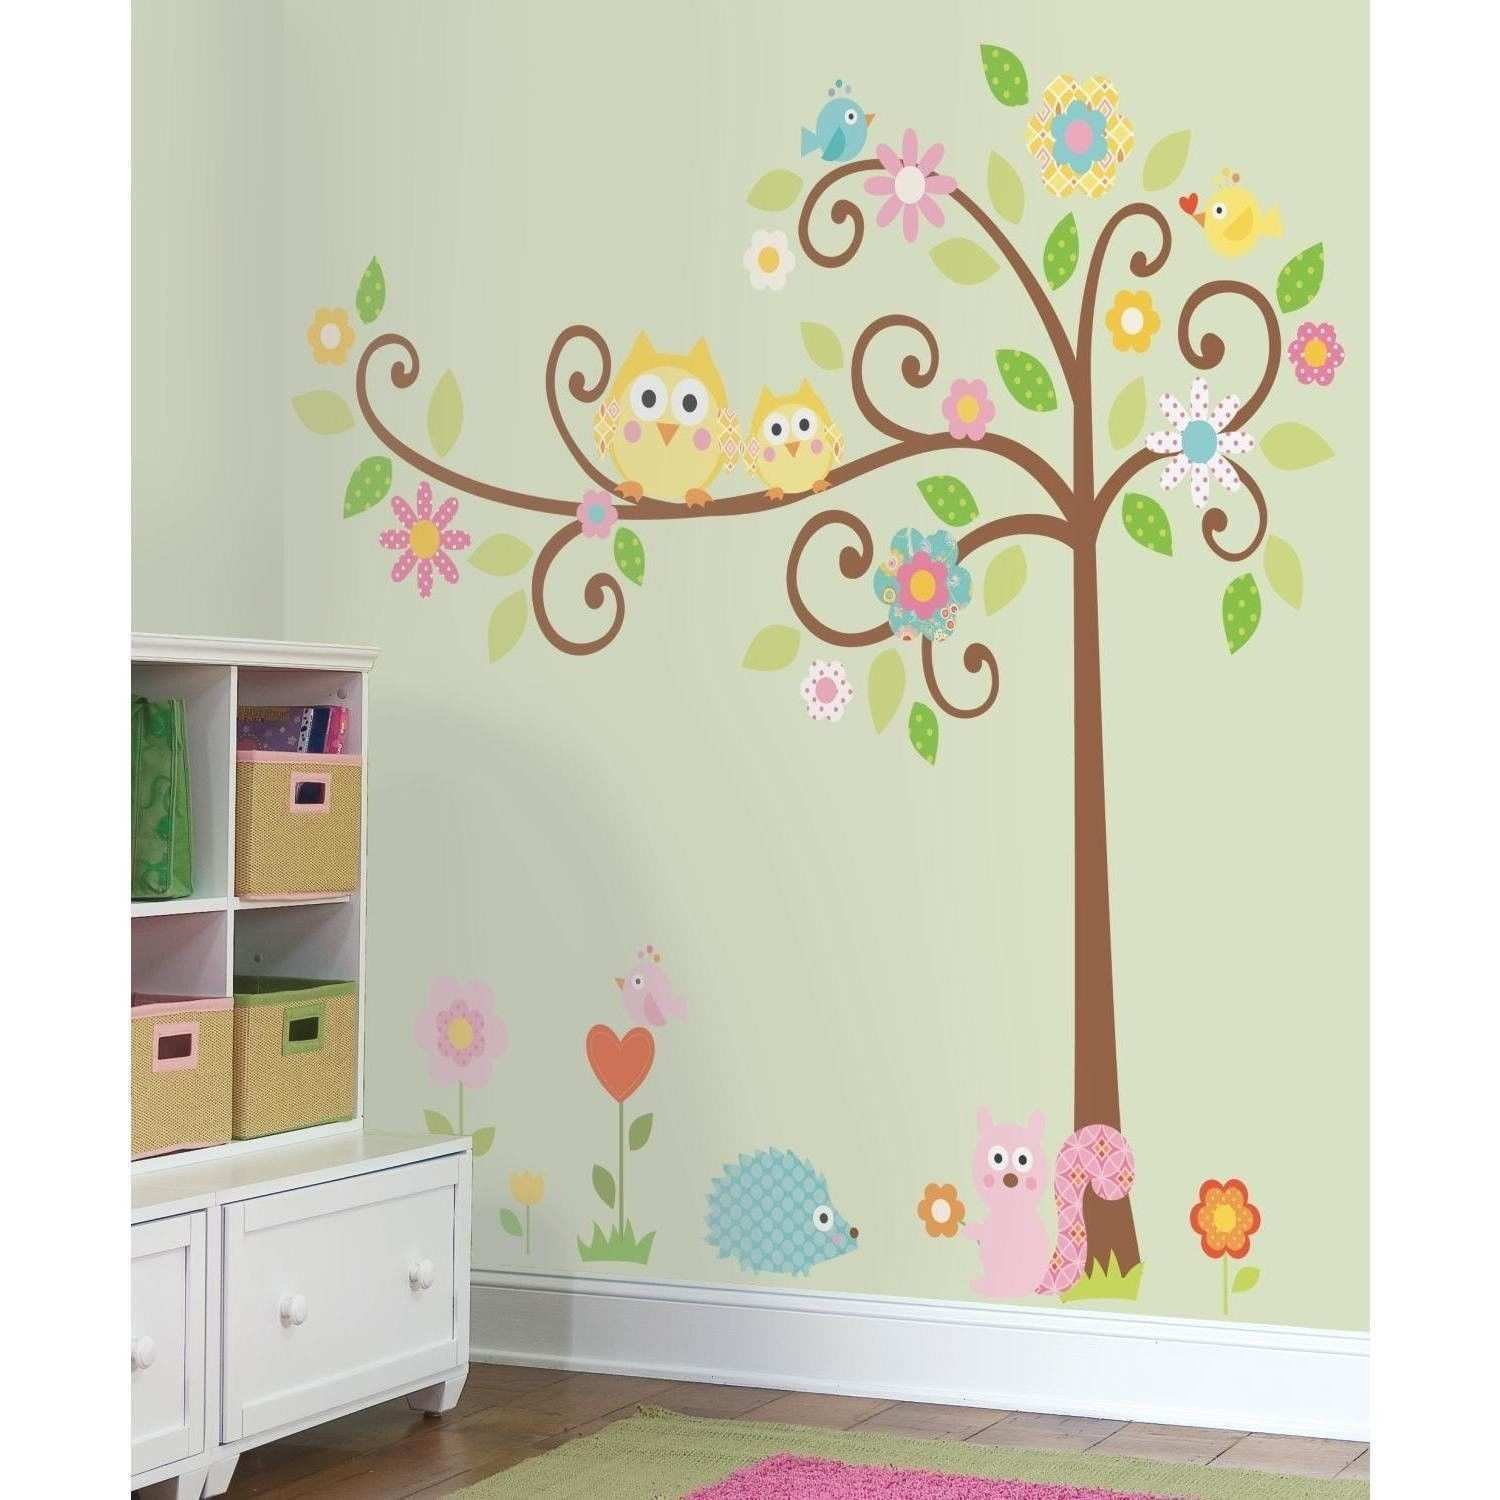 Nursery Room Wall Decor Ideas Best Palm Tree Wall Decals Unique 1